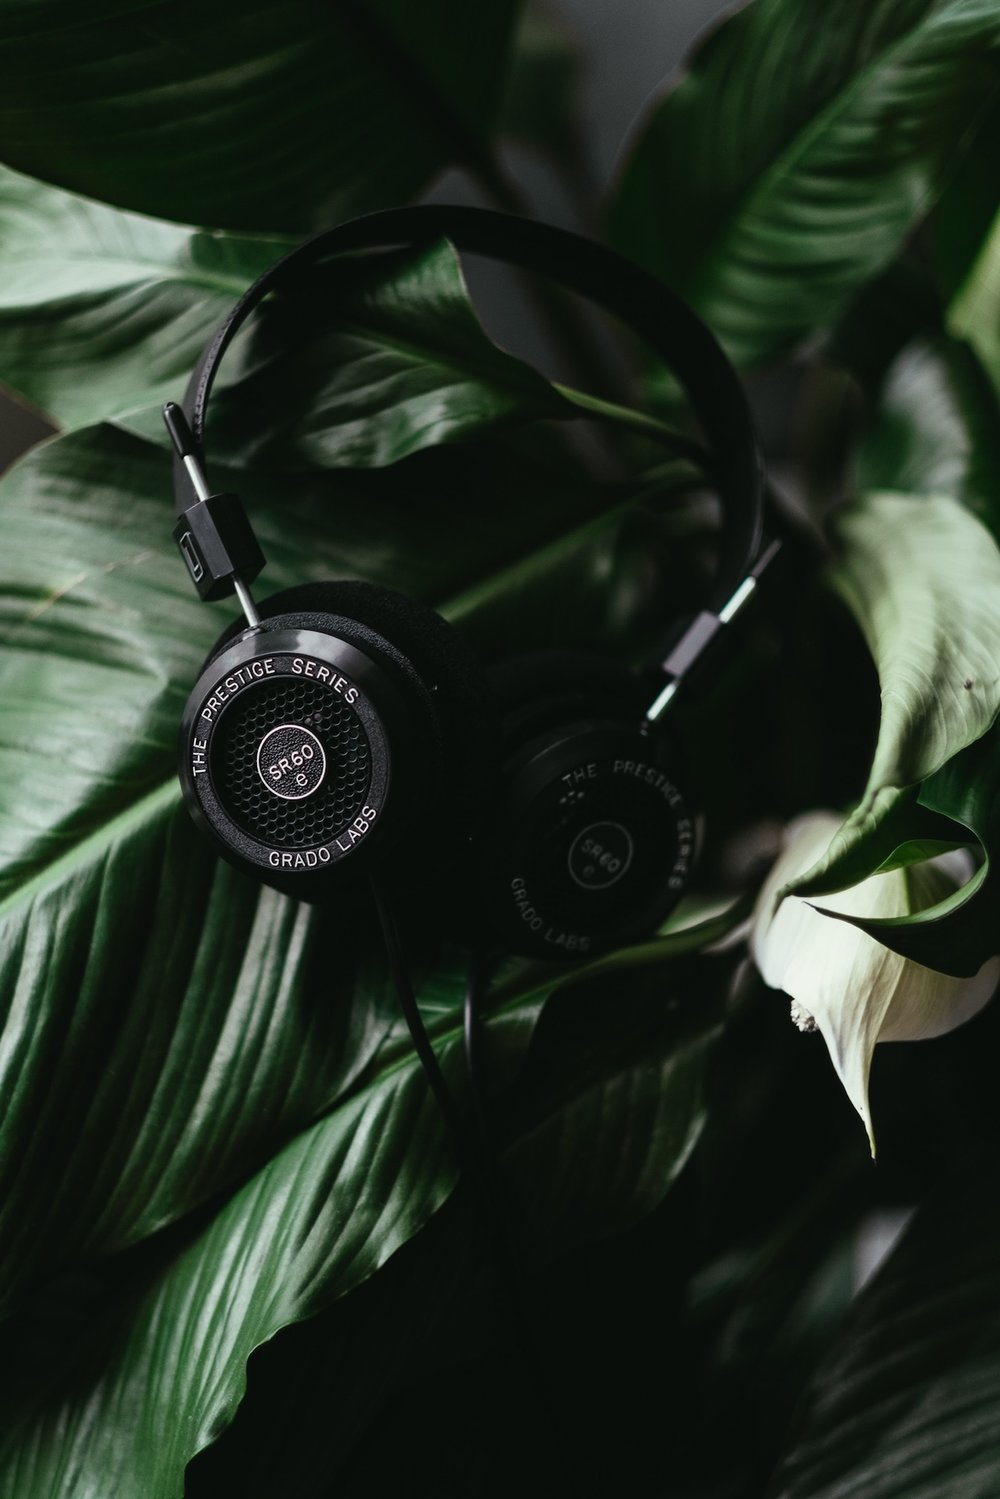 Grado - A company that hasn't advertised since 1964, Tia works with Grado to create their brand's social presence. Tia also nurtured critical partnerships including JetBlue, Skillshare, Brooklyn Kitchen & more.Location: Brooklyn, NYRole: Freelance Marketing Consultant